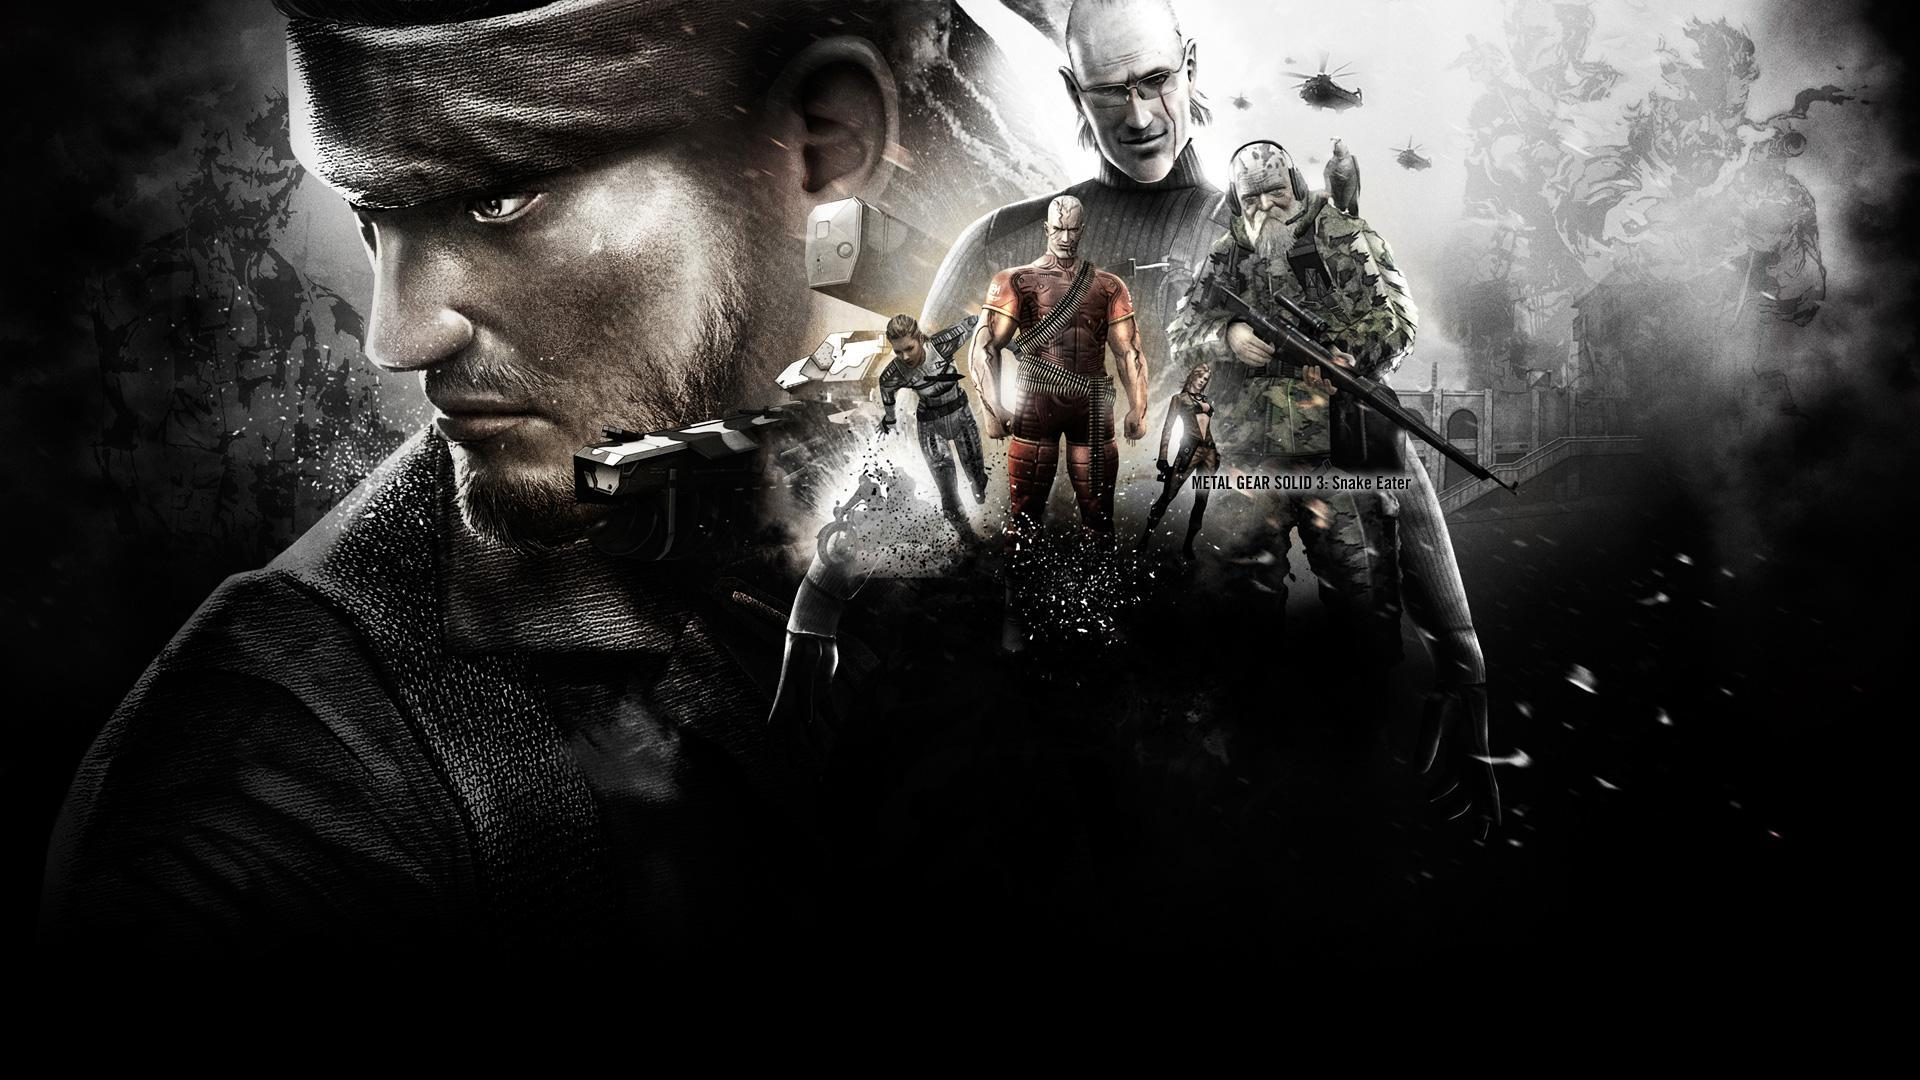 Free Download Metal Gear Solid 3 Wallpapers 1920x1080 For Your